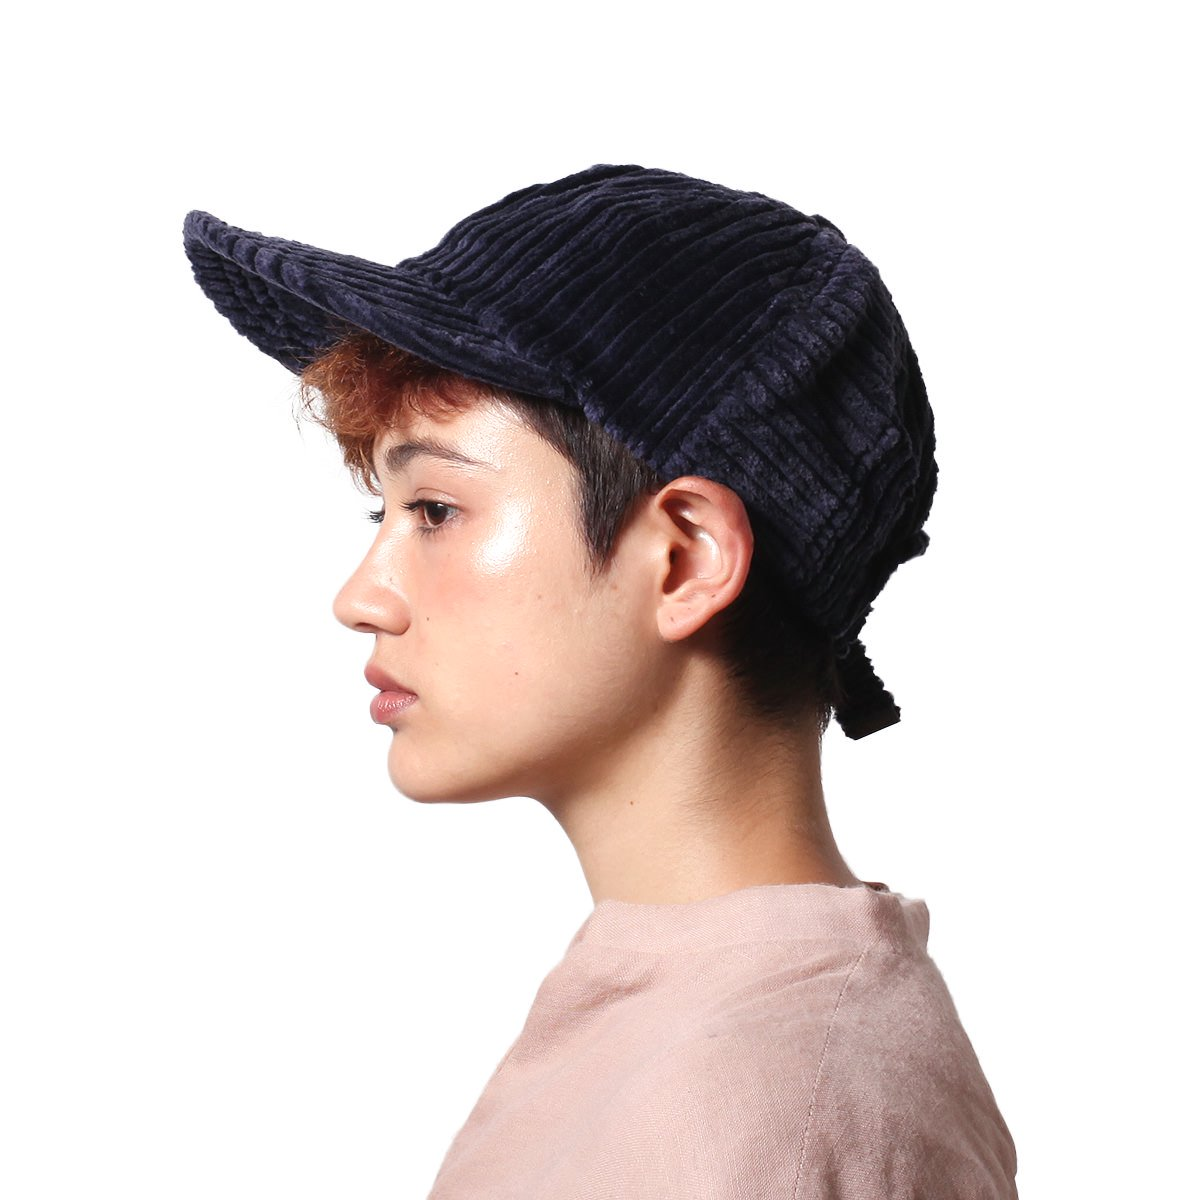 WIDE CORDUROY 8PANEL CAP 詳細画像10